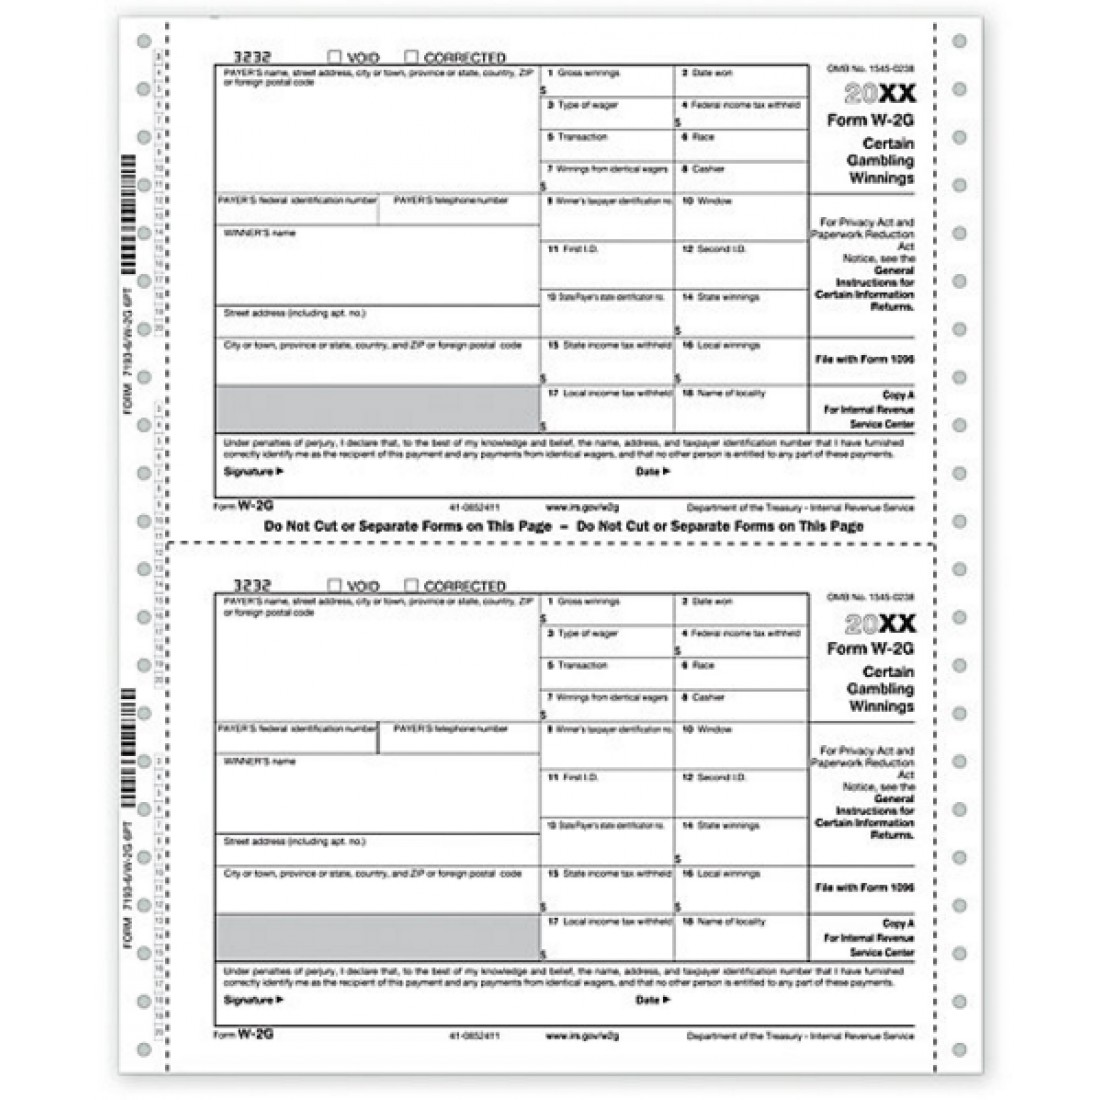 Continuous Federal Tax Form W 2G